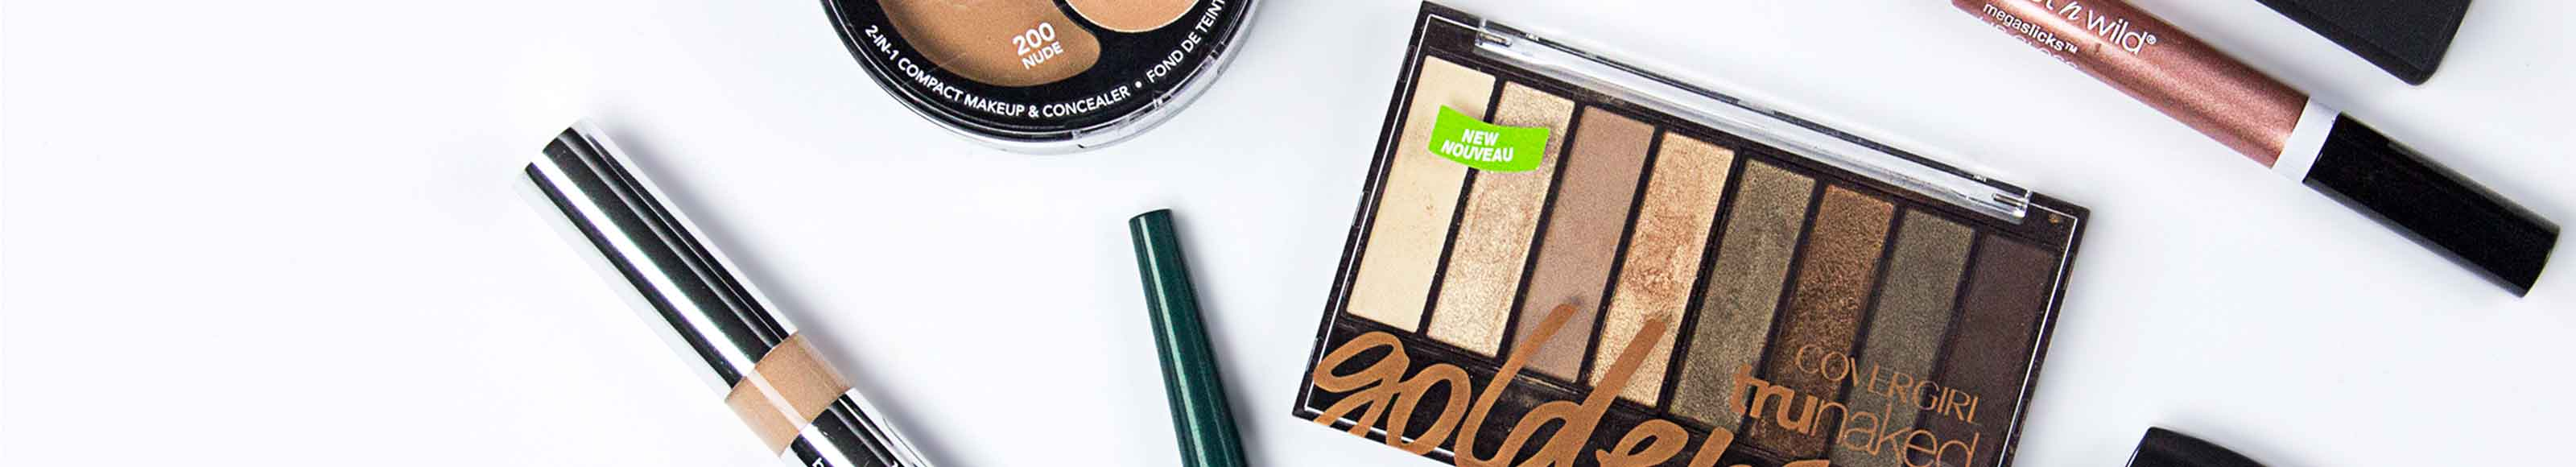 Makeup Products banner